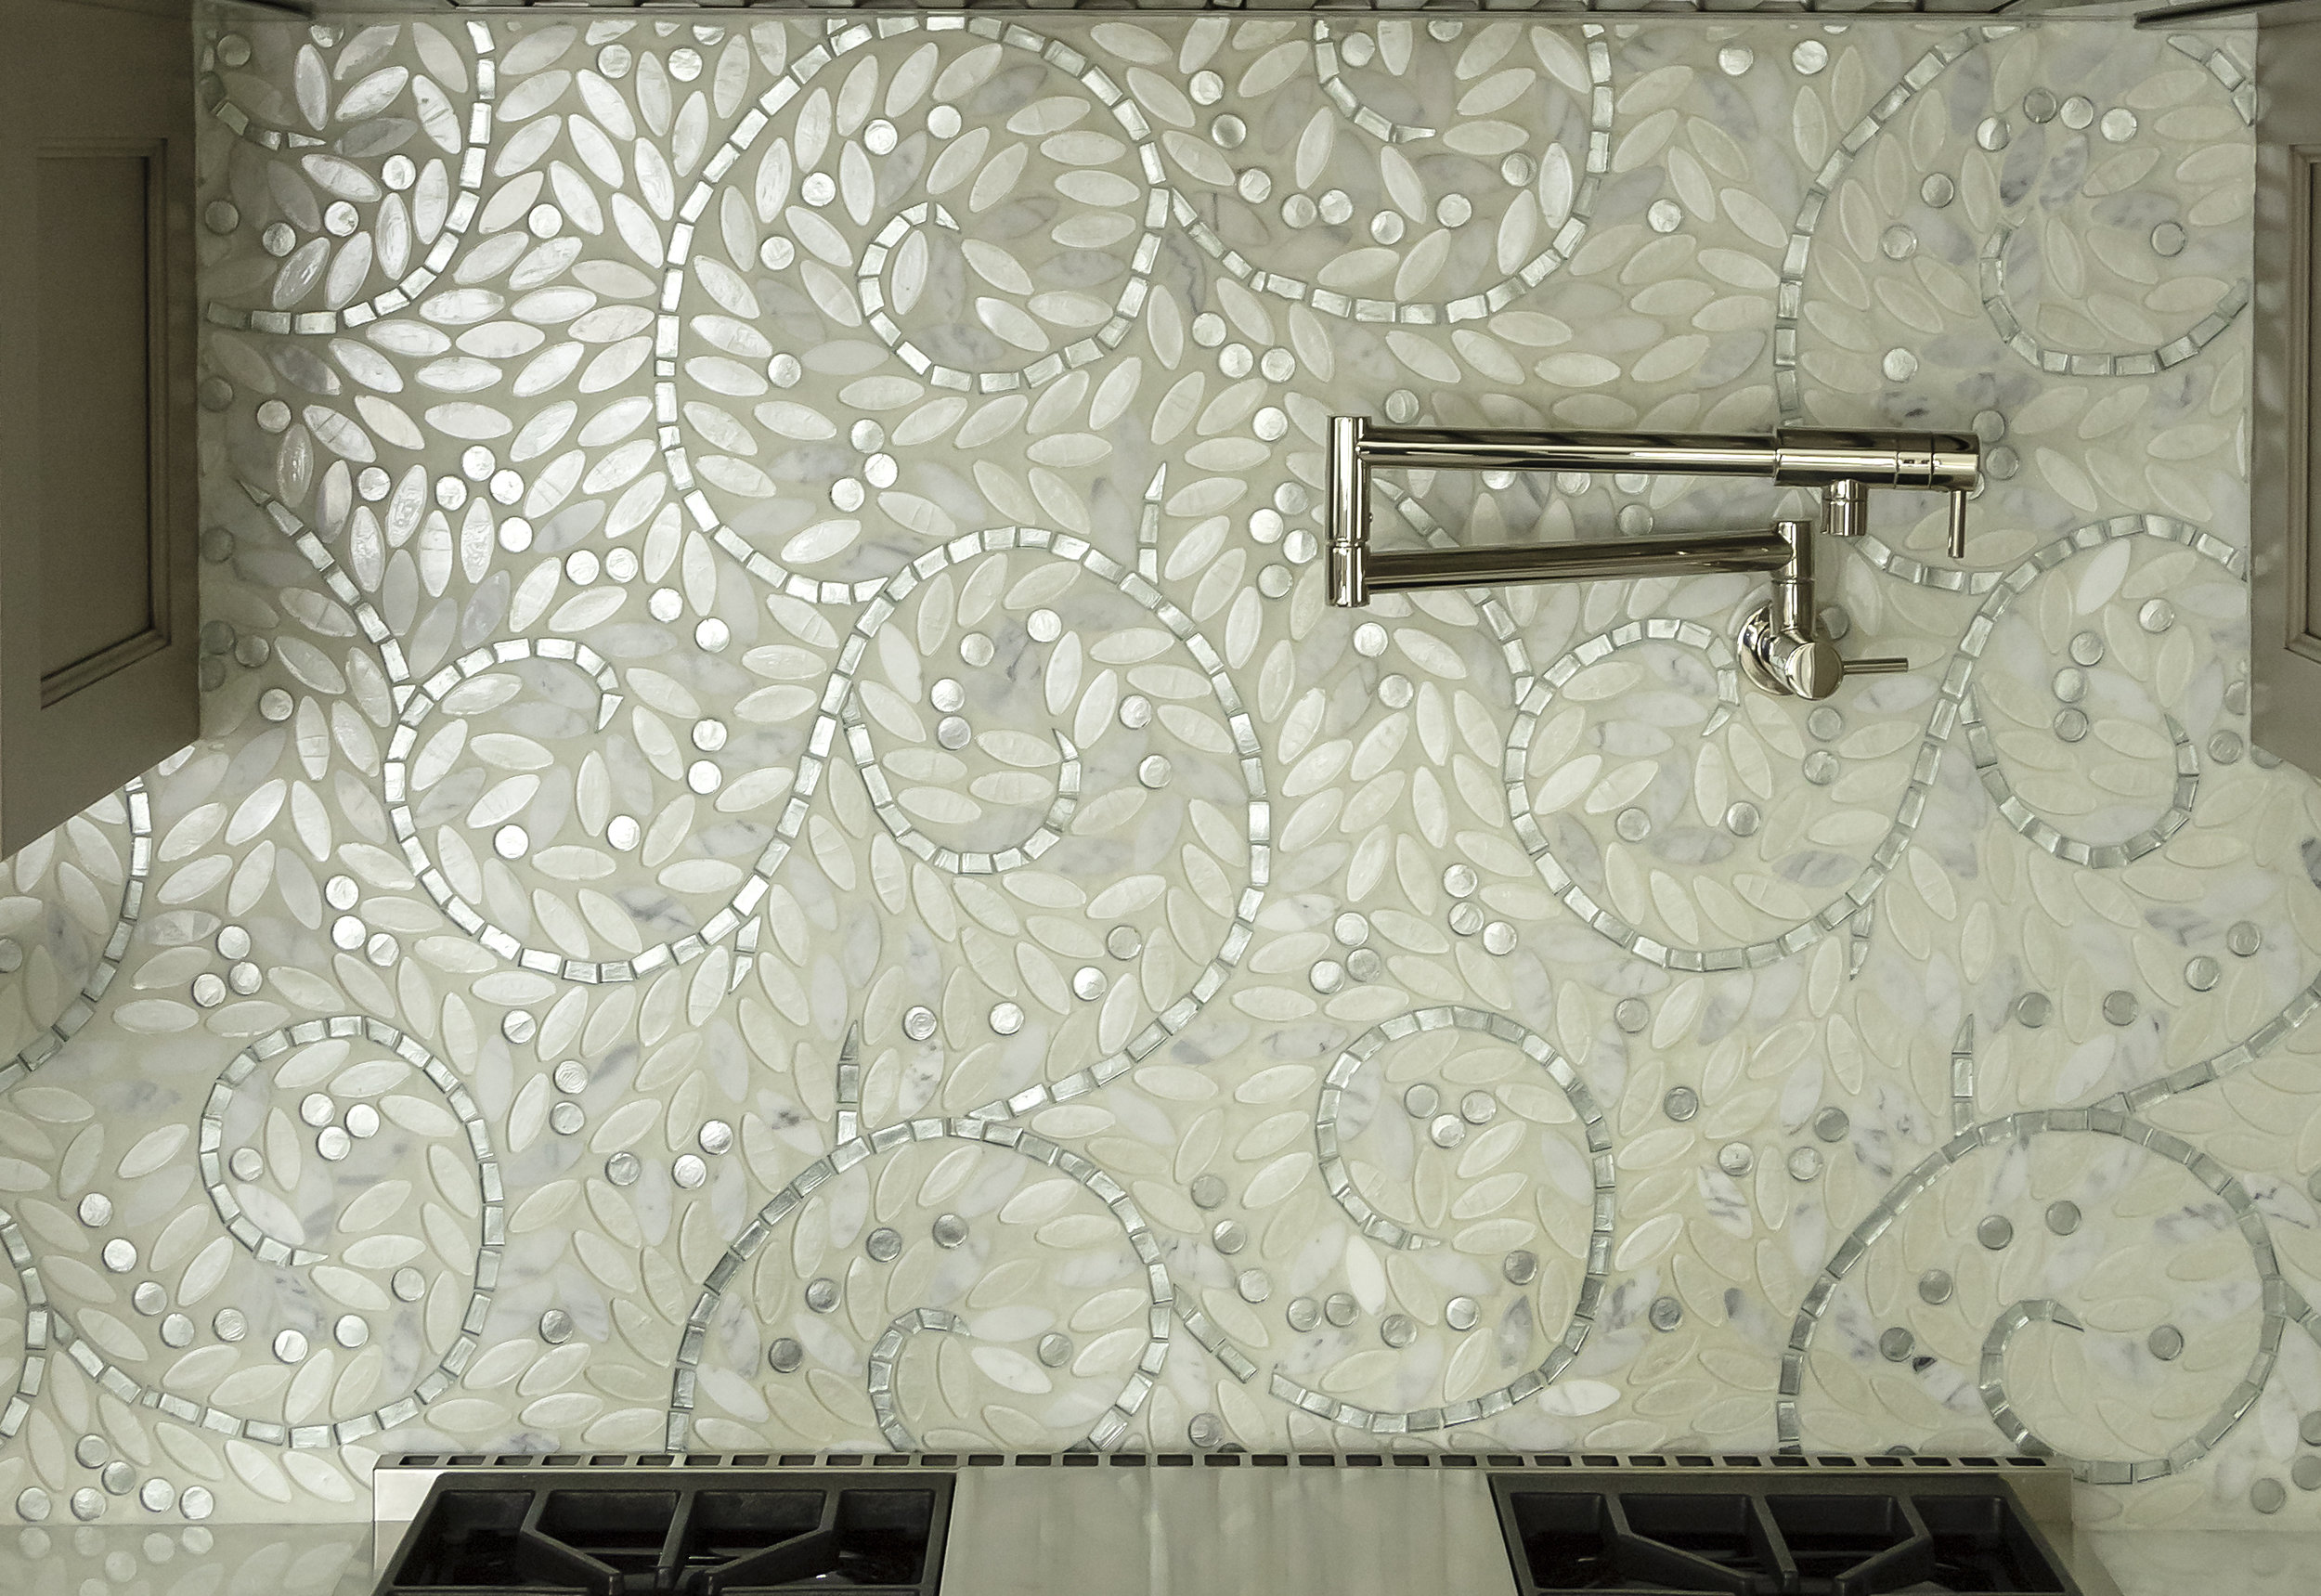 MOSAICS - Custom-made pieces or predesigned patterns. Can be a focal point or decorative trim